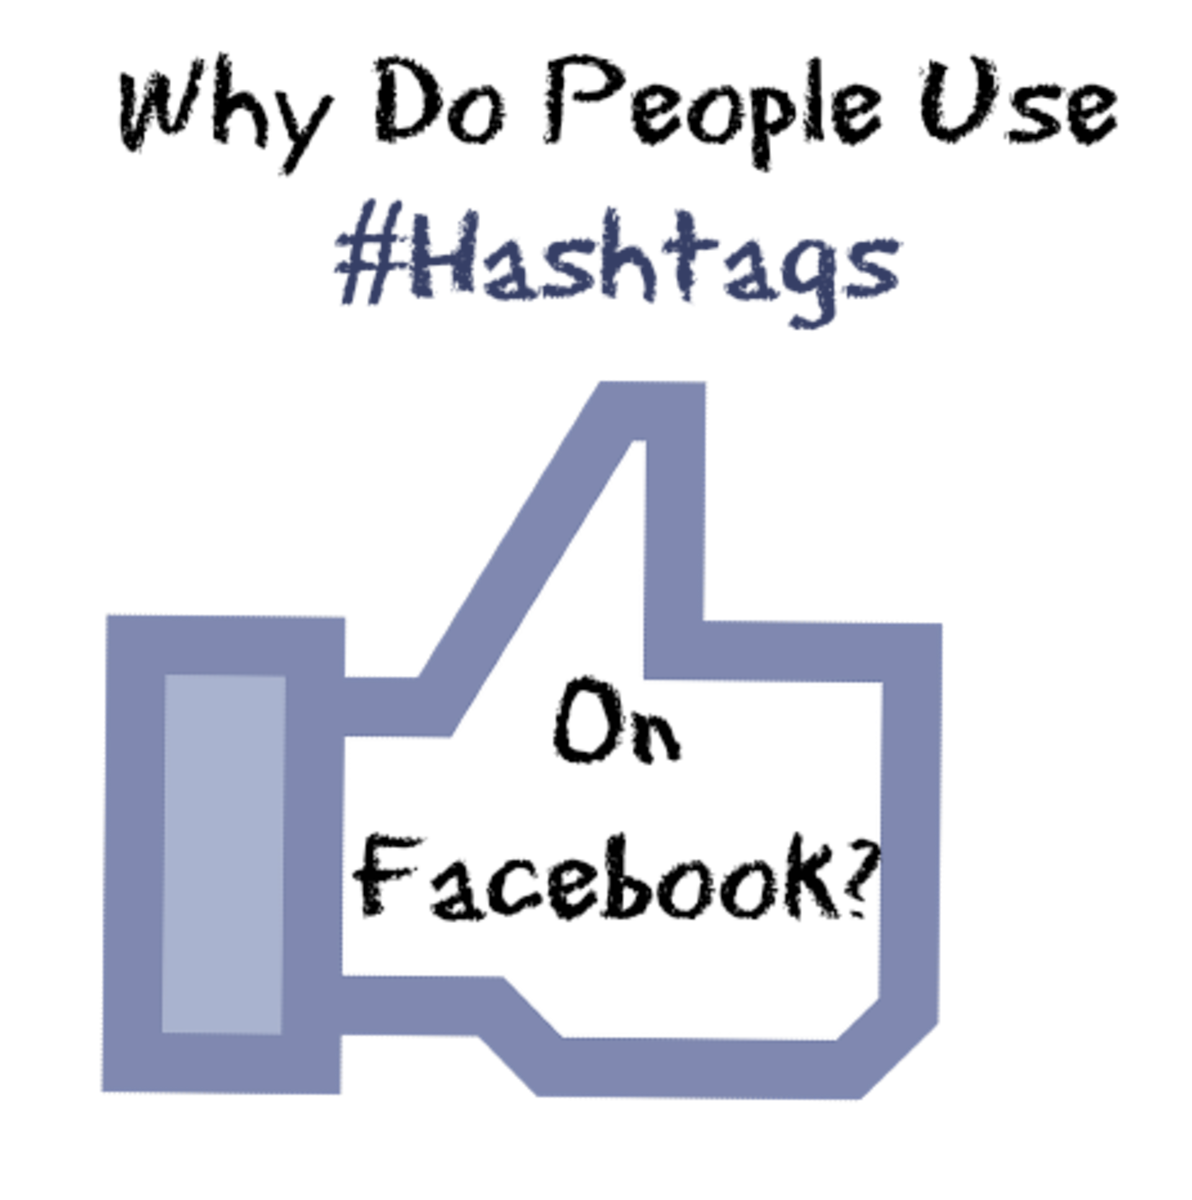 Why Do People Use Hashtags On Facebook?